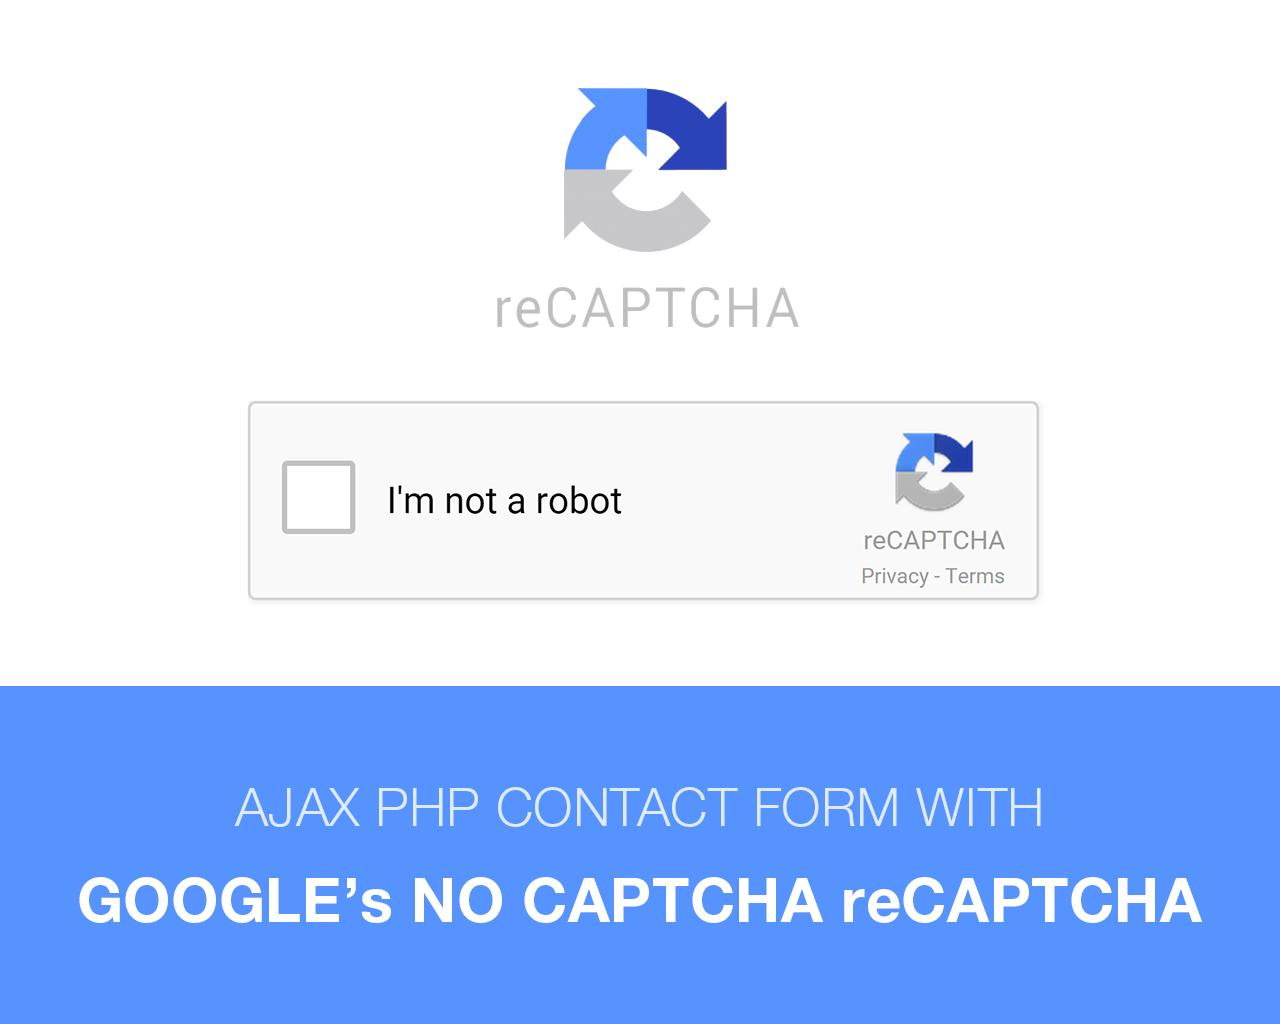 PHP Contact Form with Google No Captcha Recaptcha by surjithctly - 89787